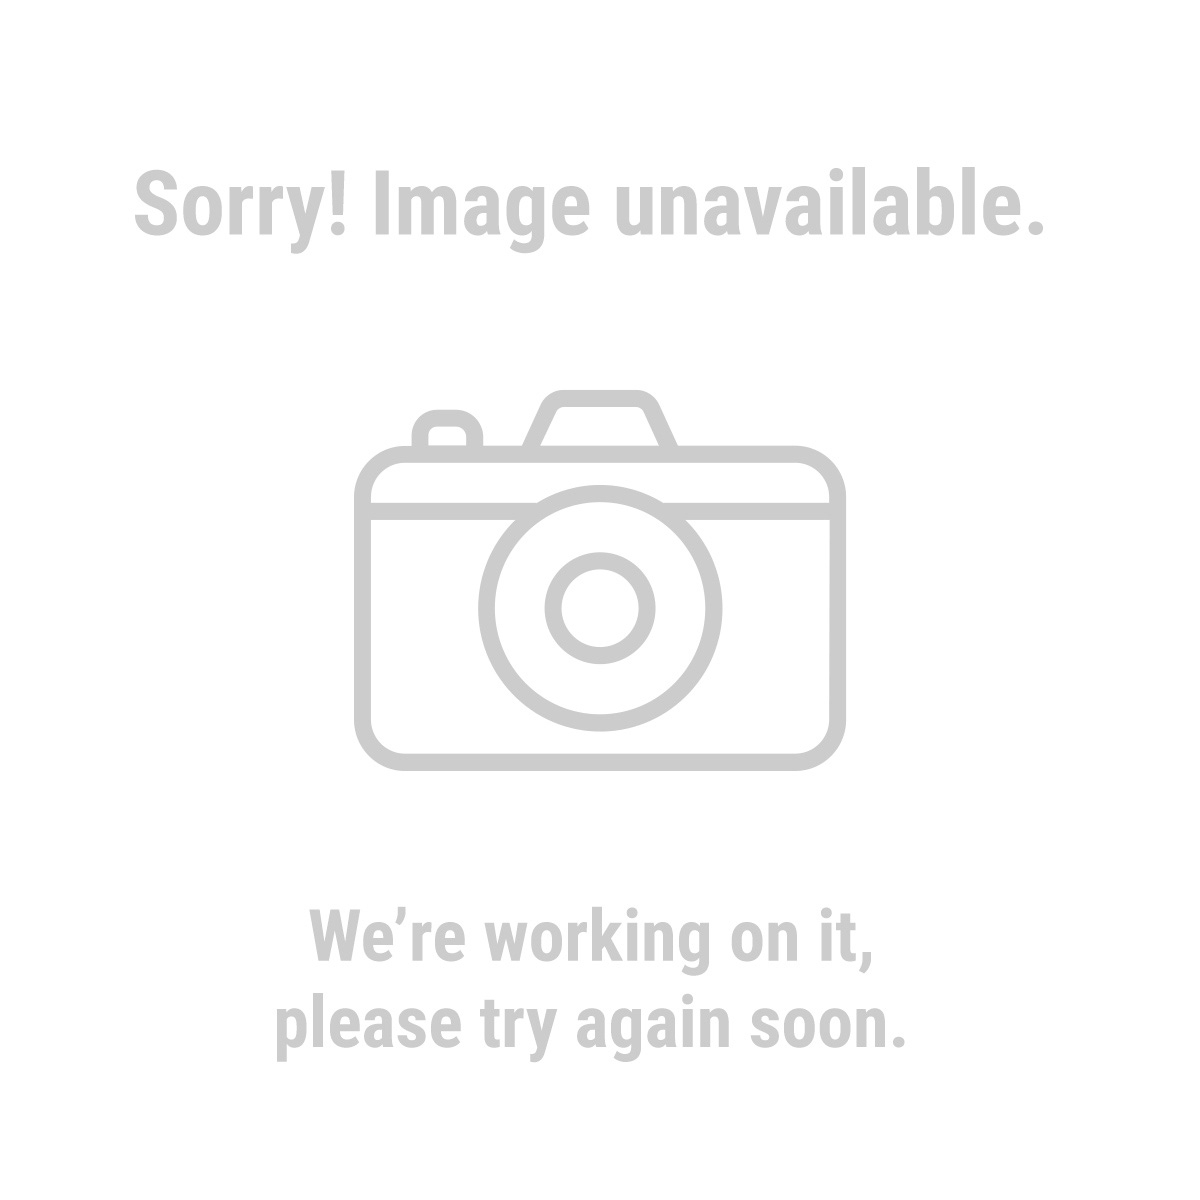 "HFT 69570 60 ft. x 3/4"" Industrial Grade Electrical Tape"